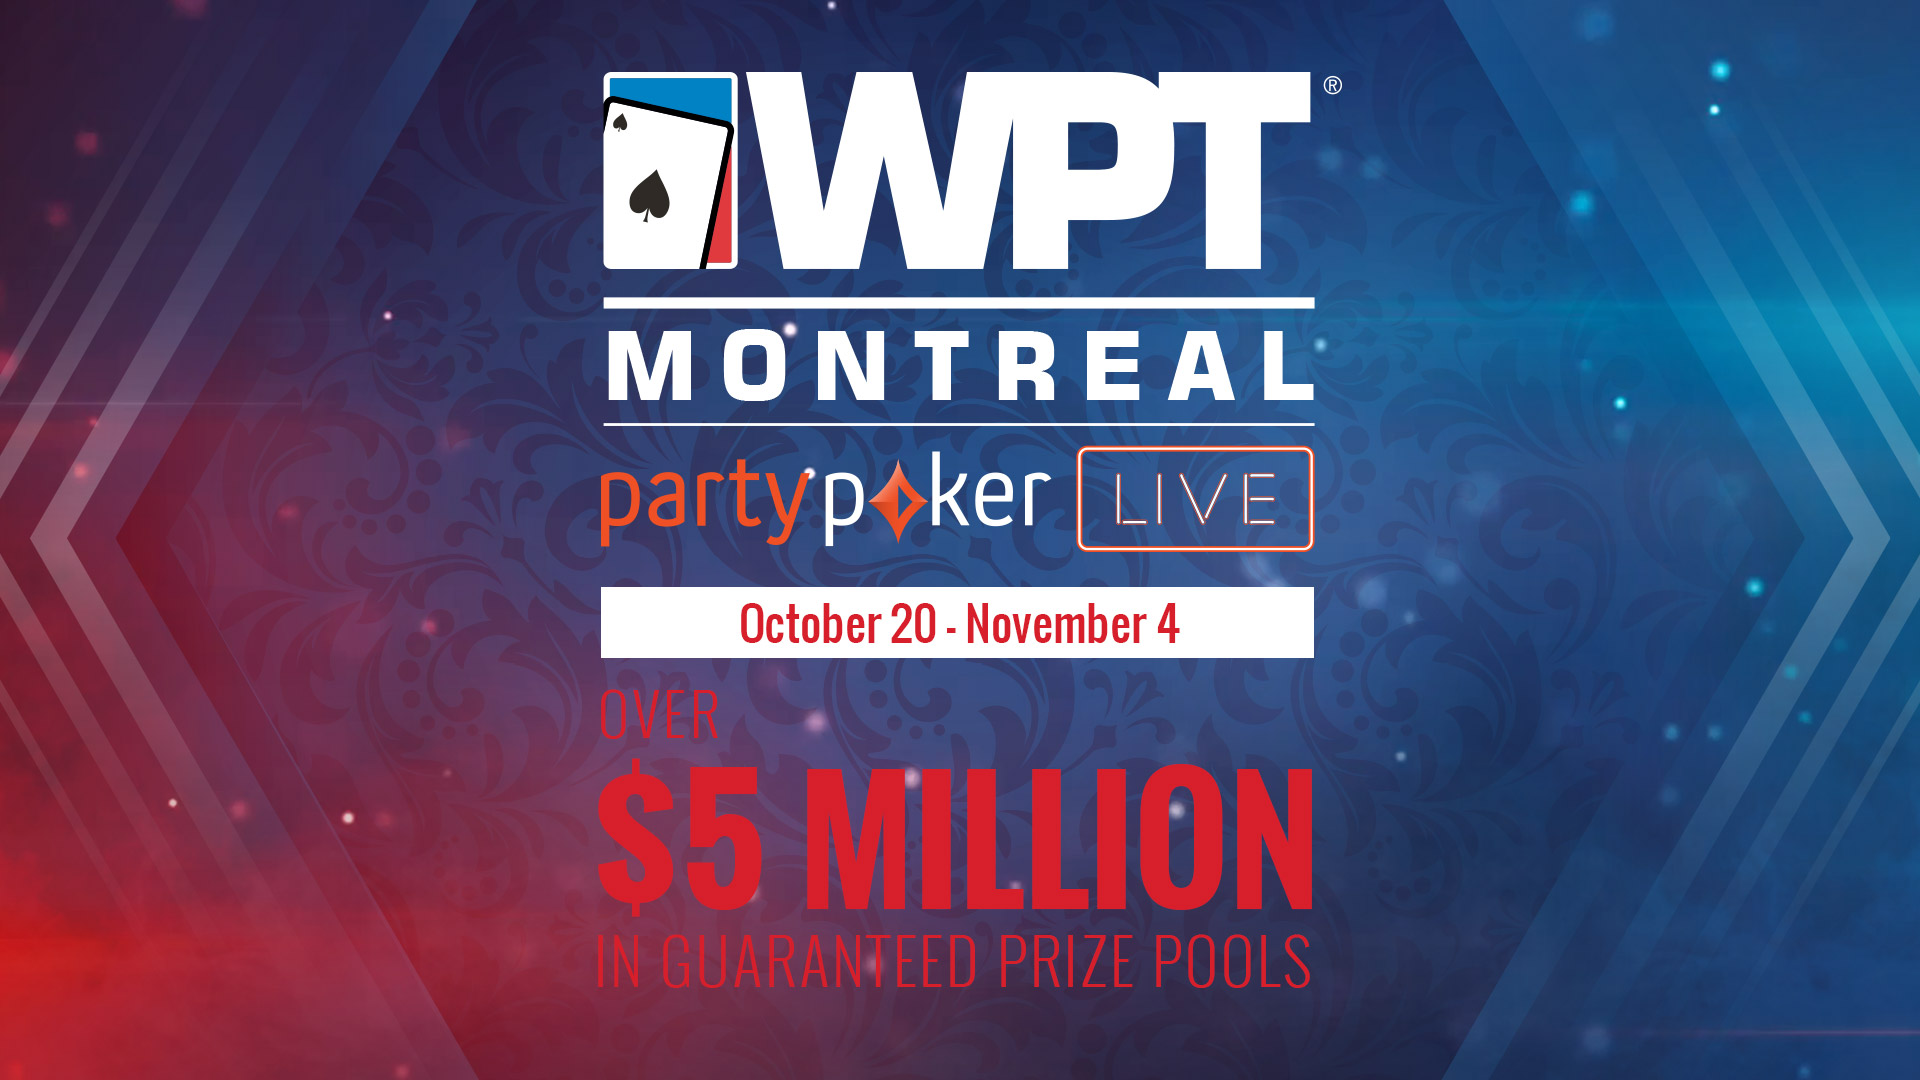 The WPT Montreal is finally announced